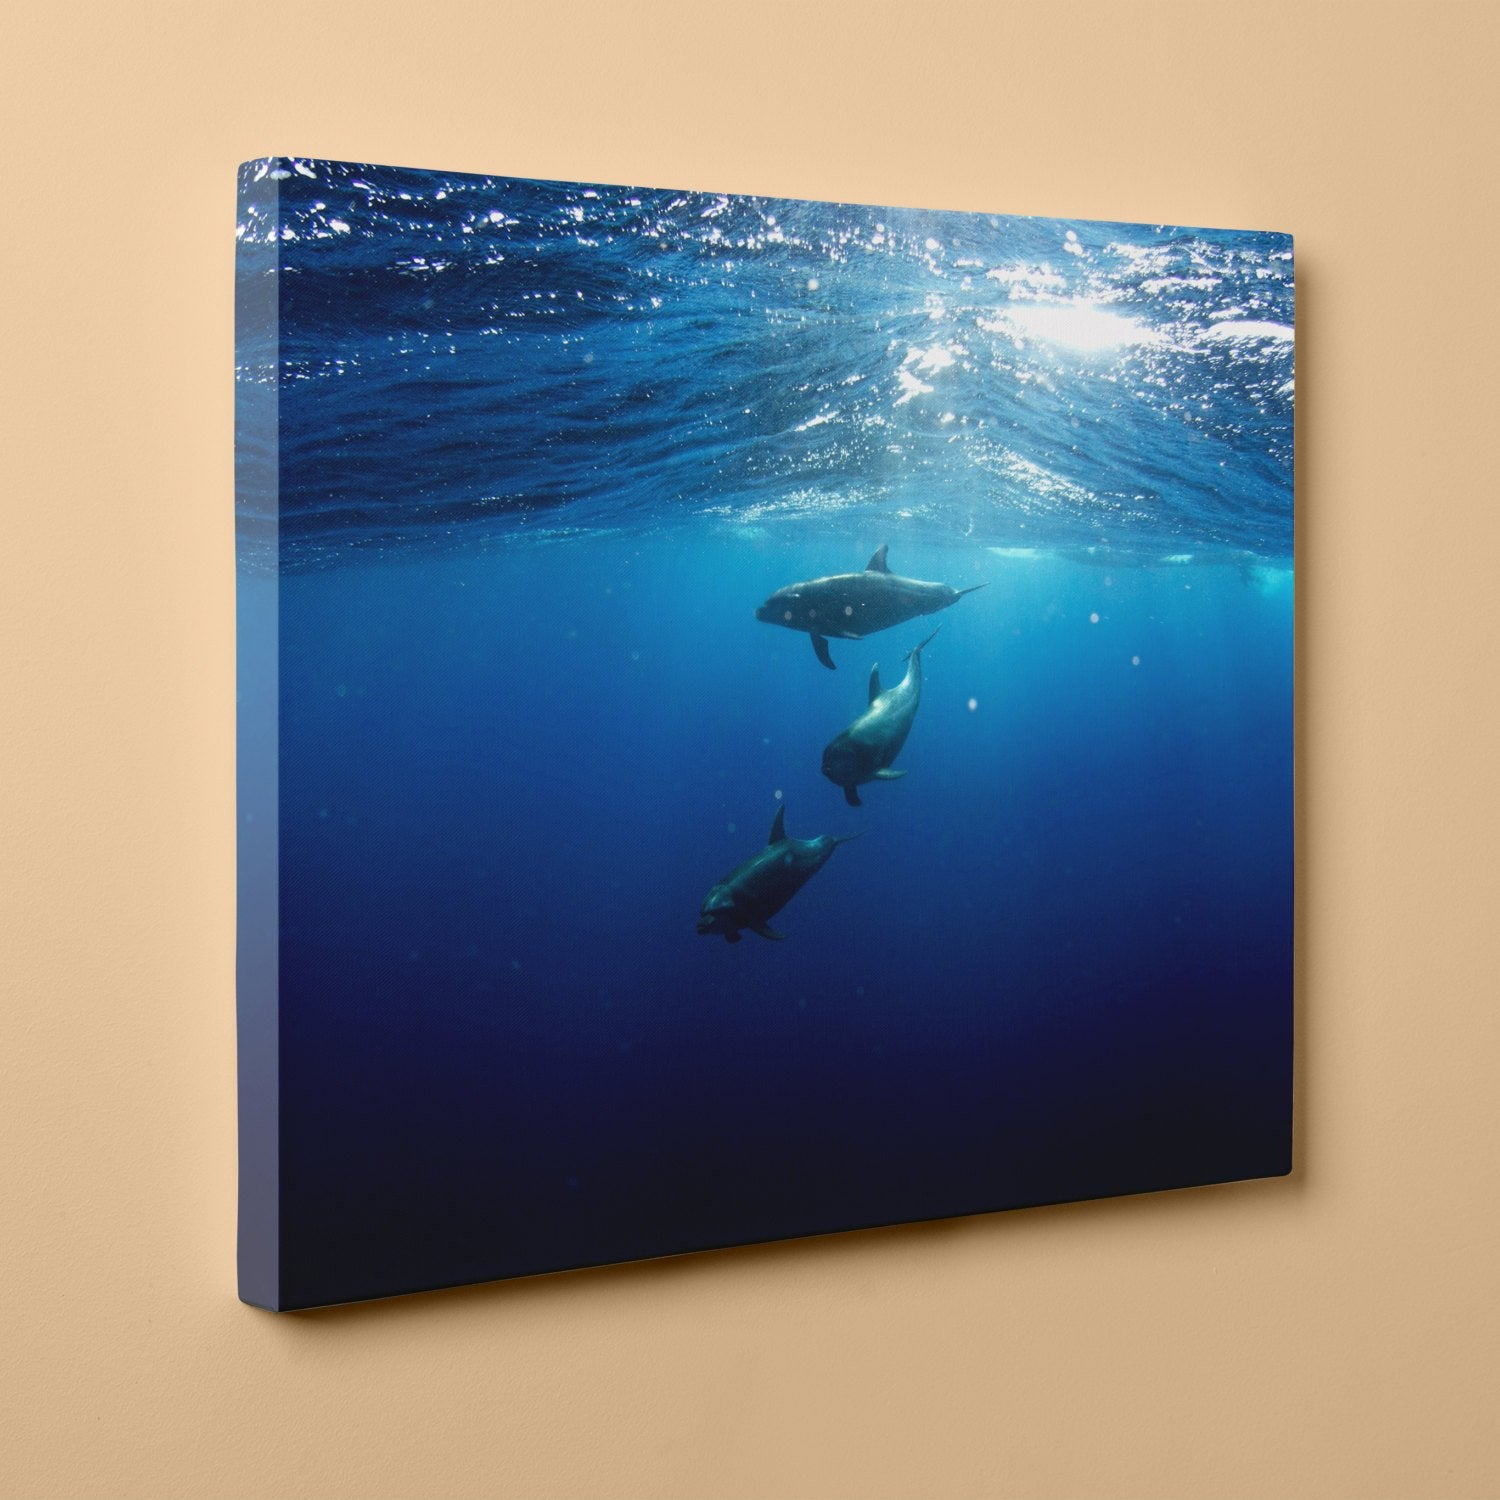 "Dolphins Diving Under (12"" x 18"") - Canvas Wrap Print"